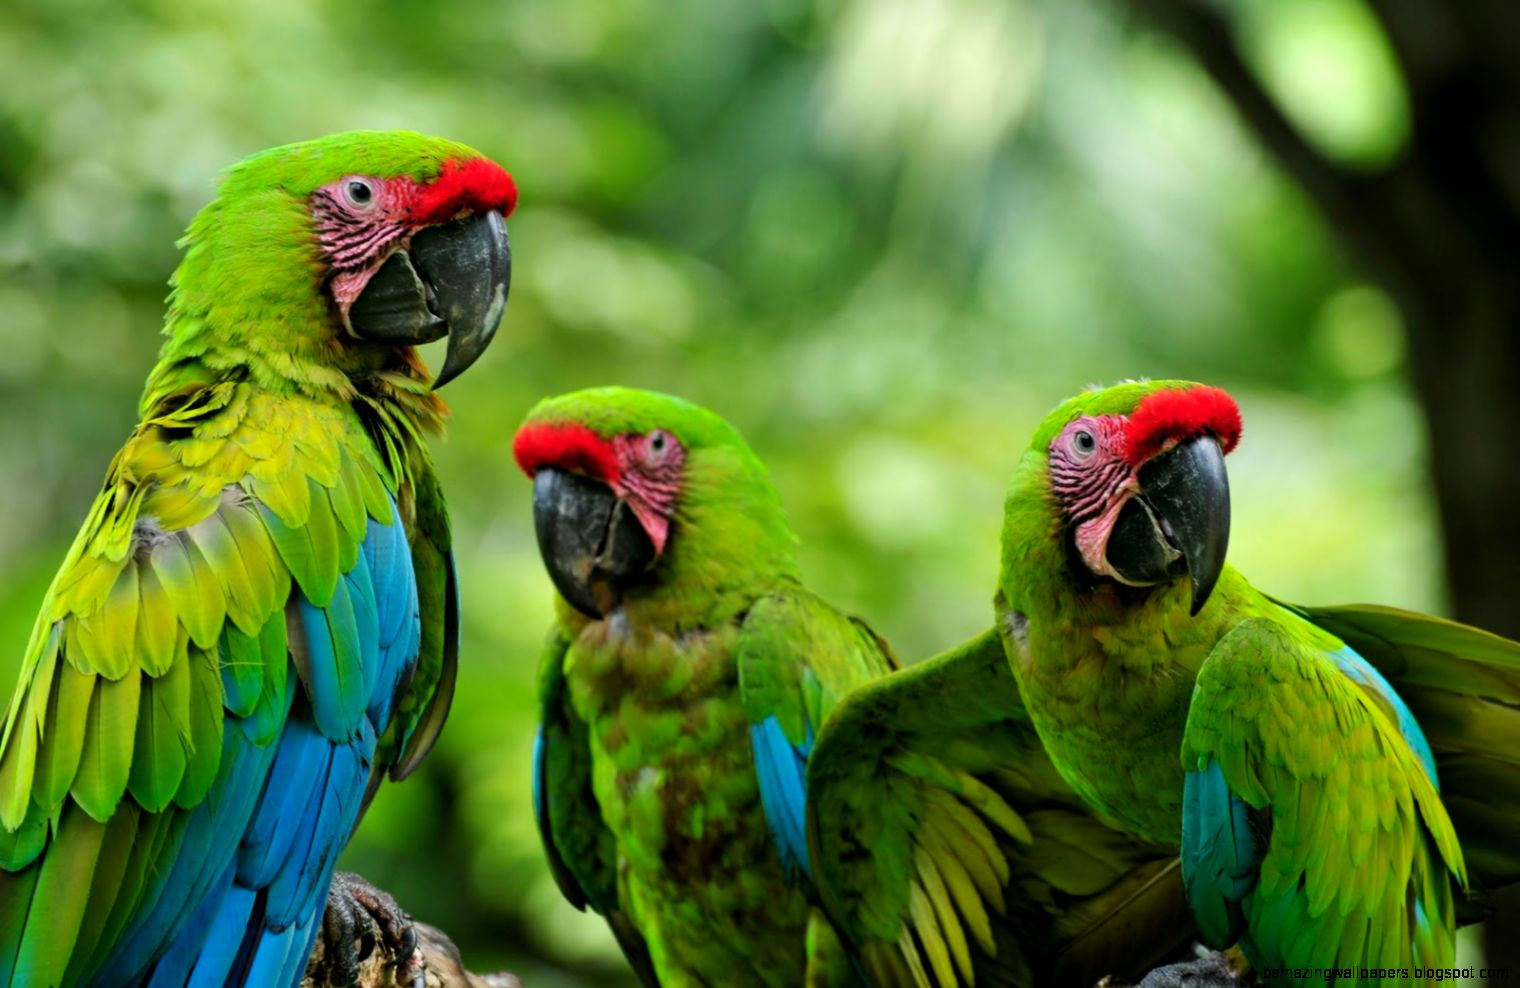 GreatGreenMacaw1